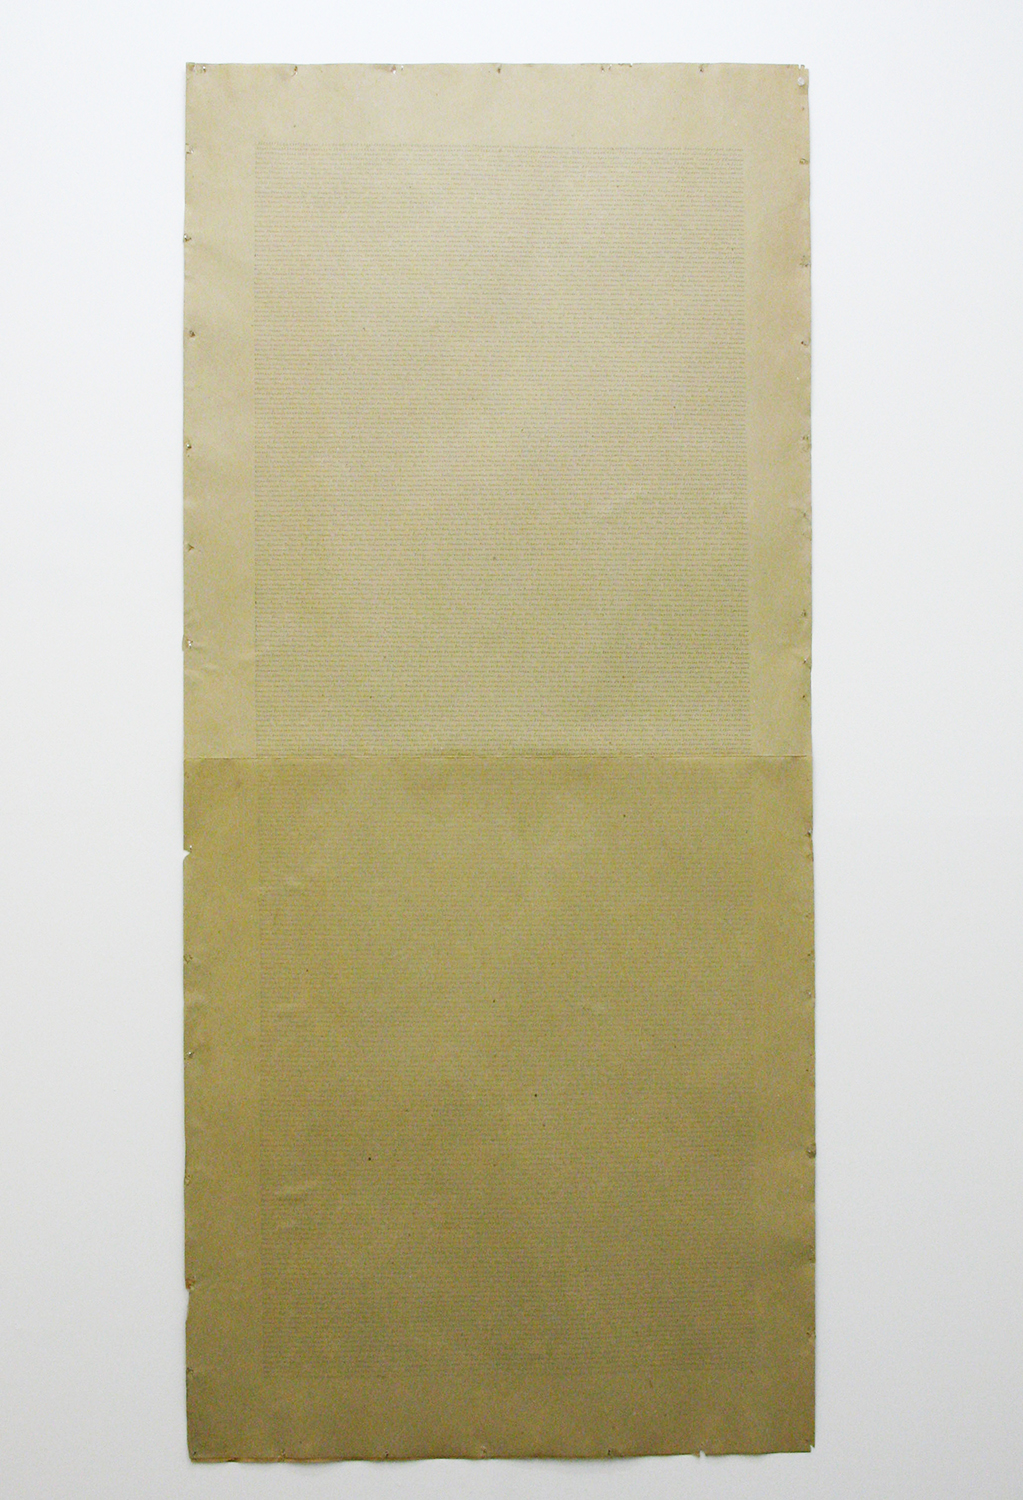 Paper drawing|pencil on paper|1970s